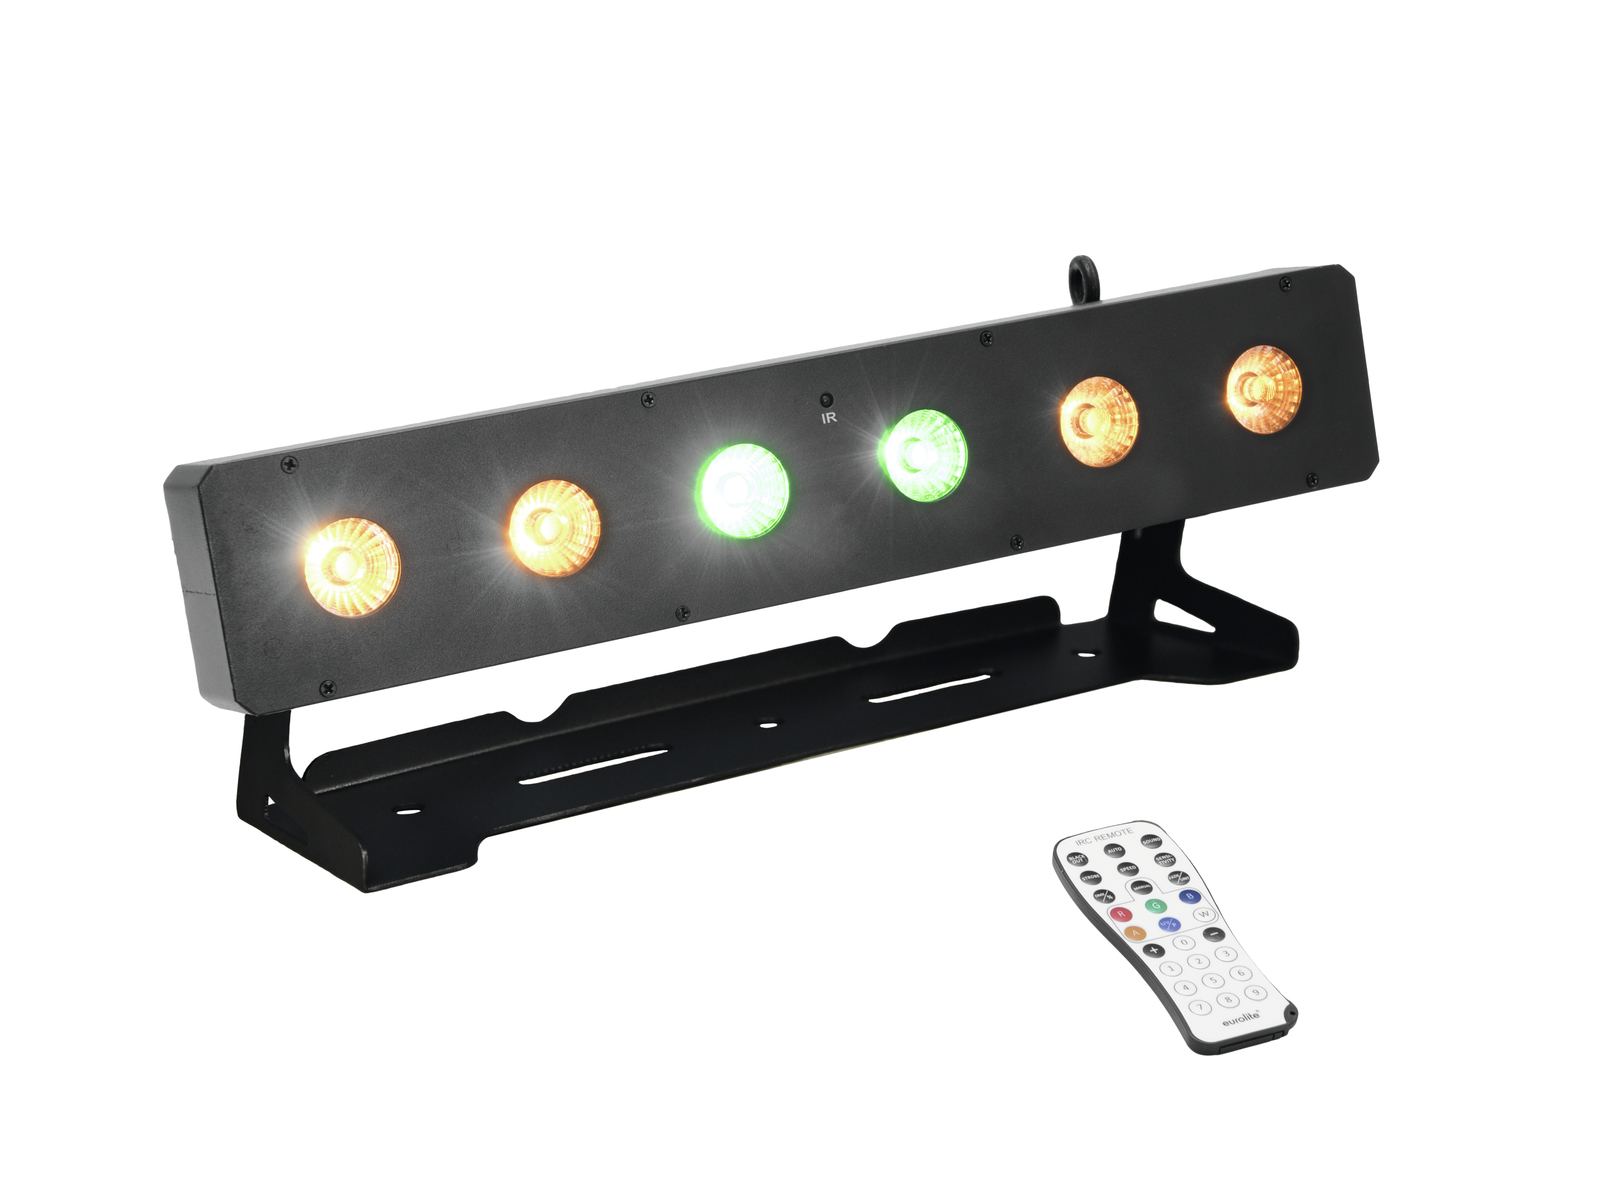 EUROLITE LED PIX-6 HCL bar